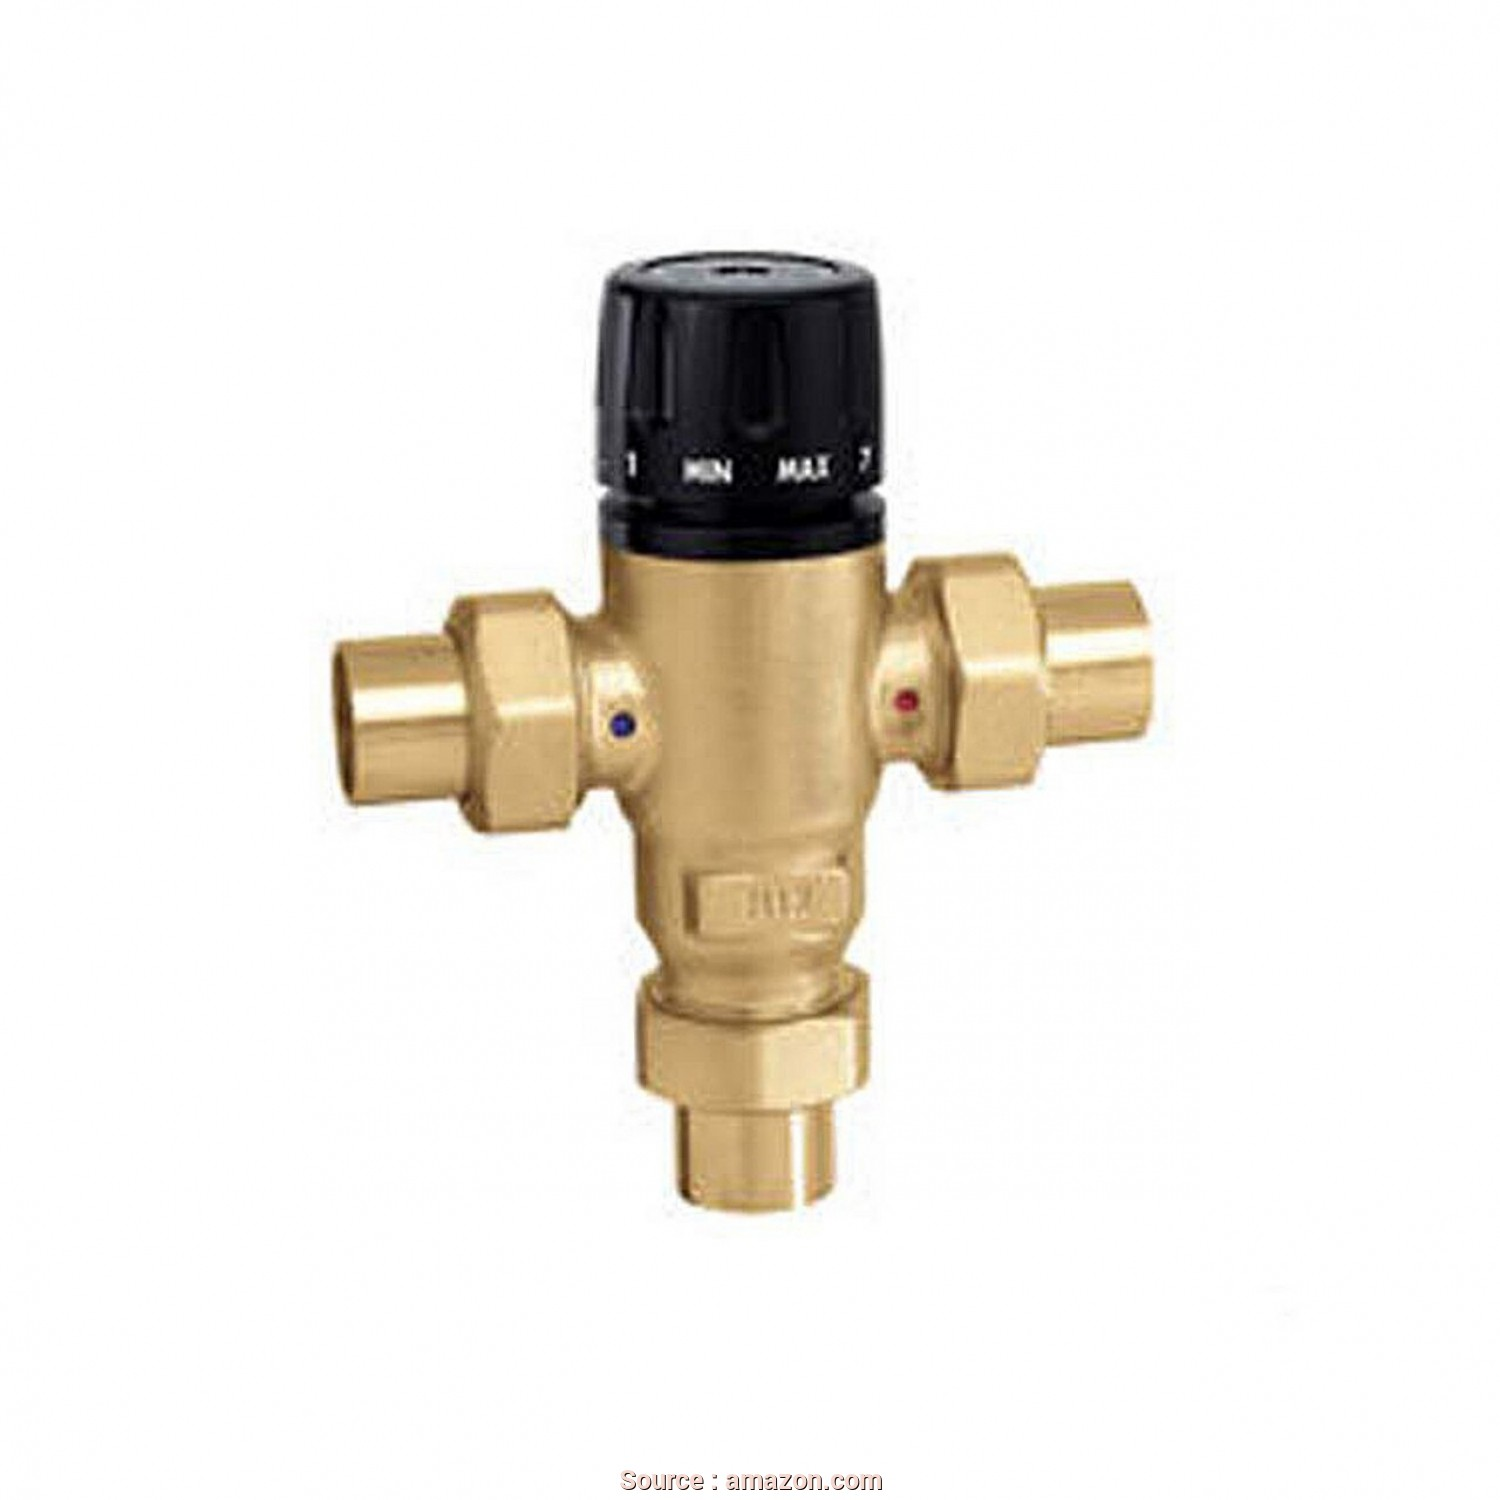 Amazon Copridivani Caleffi, Elegante Amazon.Com: Caleffi 521609A Mixing, 3-Way Thermostatic Mixing Valve, Low-Lead Brass 1-Inch Sweat: Home Improvement